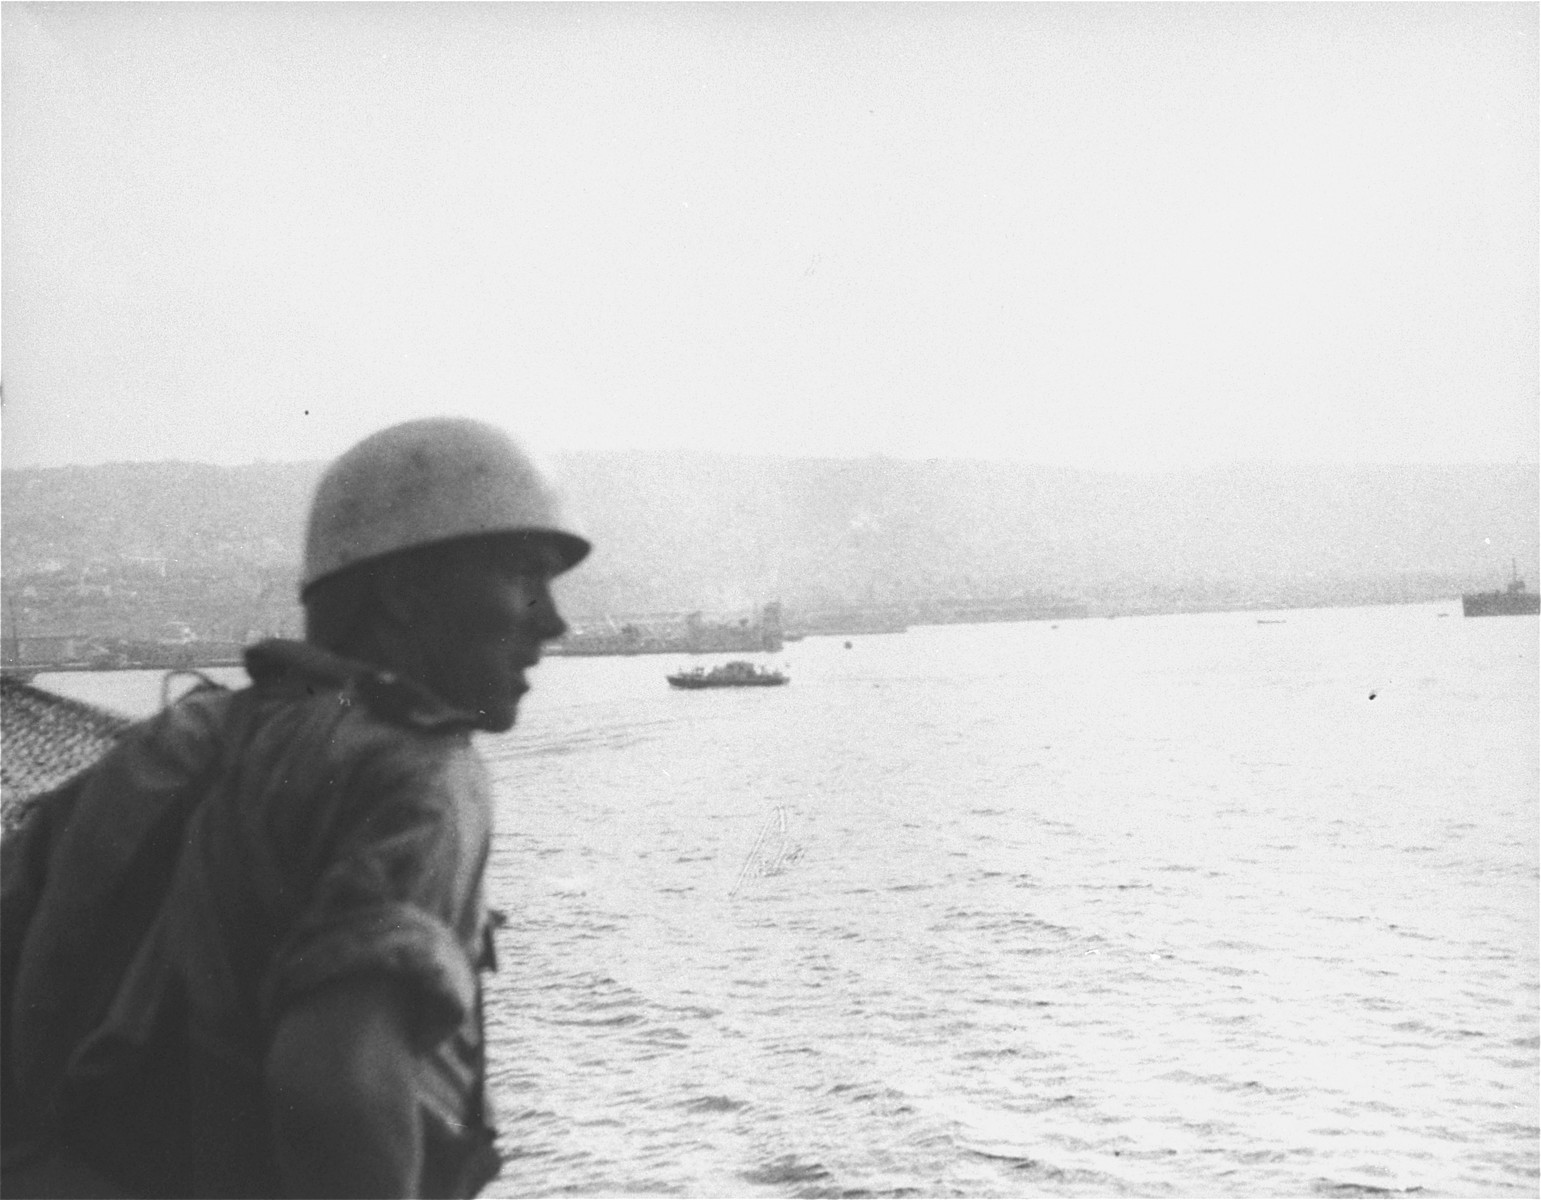 A British marine views the port of Haifa from the deck of the Exodus 1947.